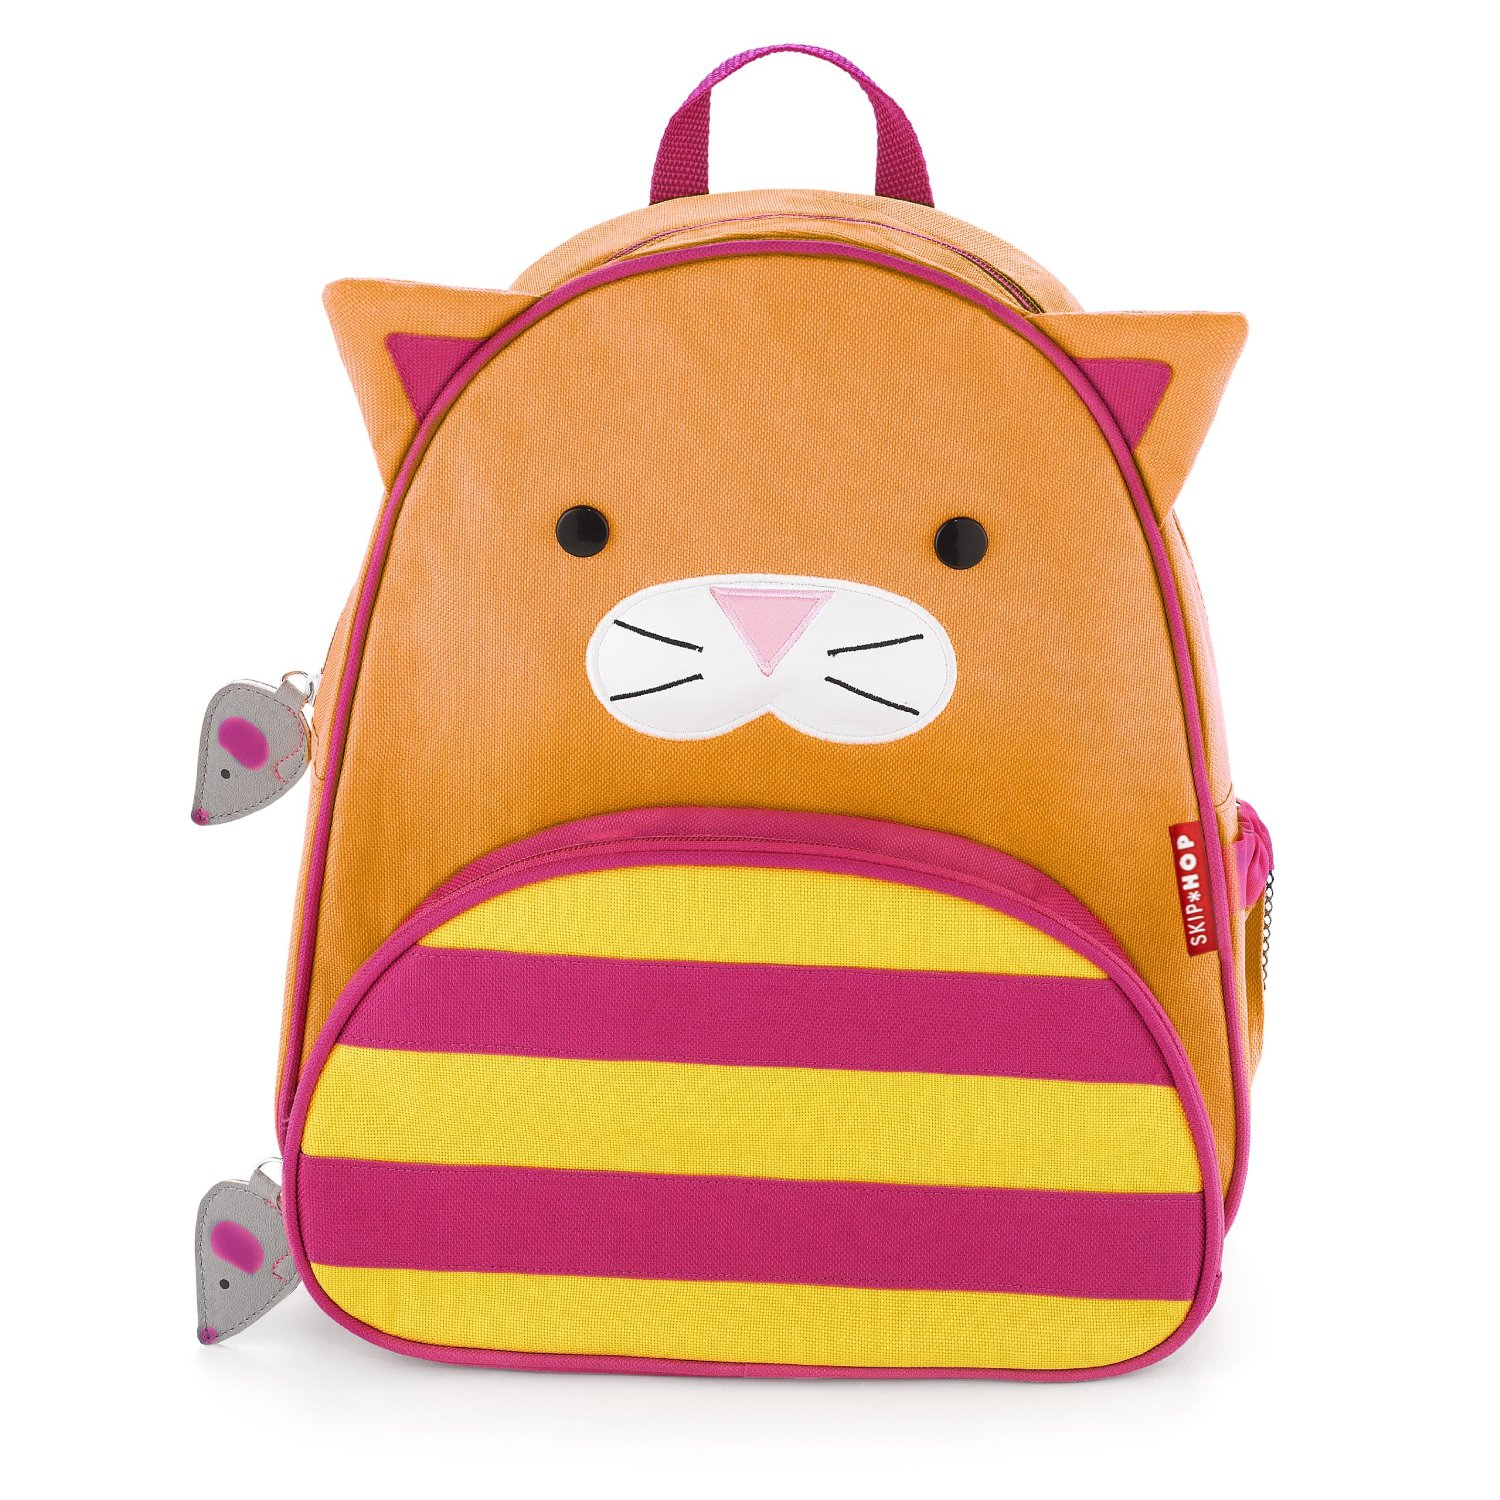 Kid Backpacks 2L5tG8ad